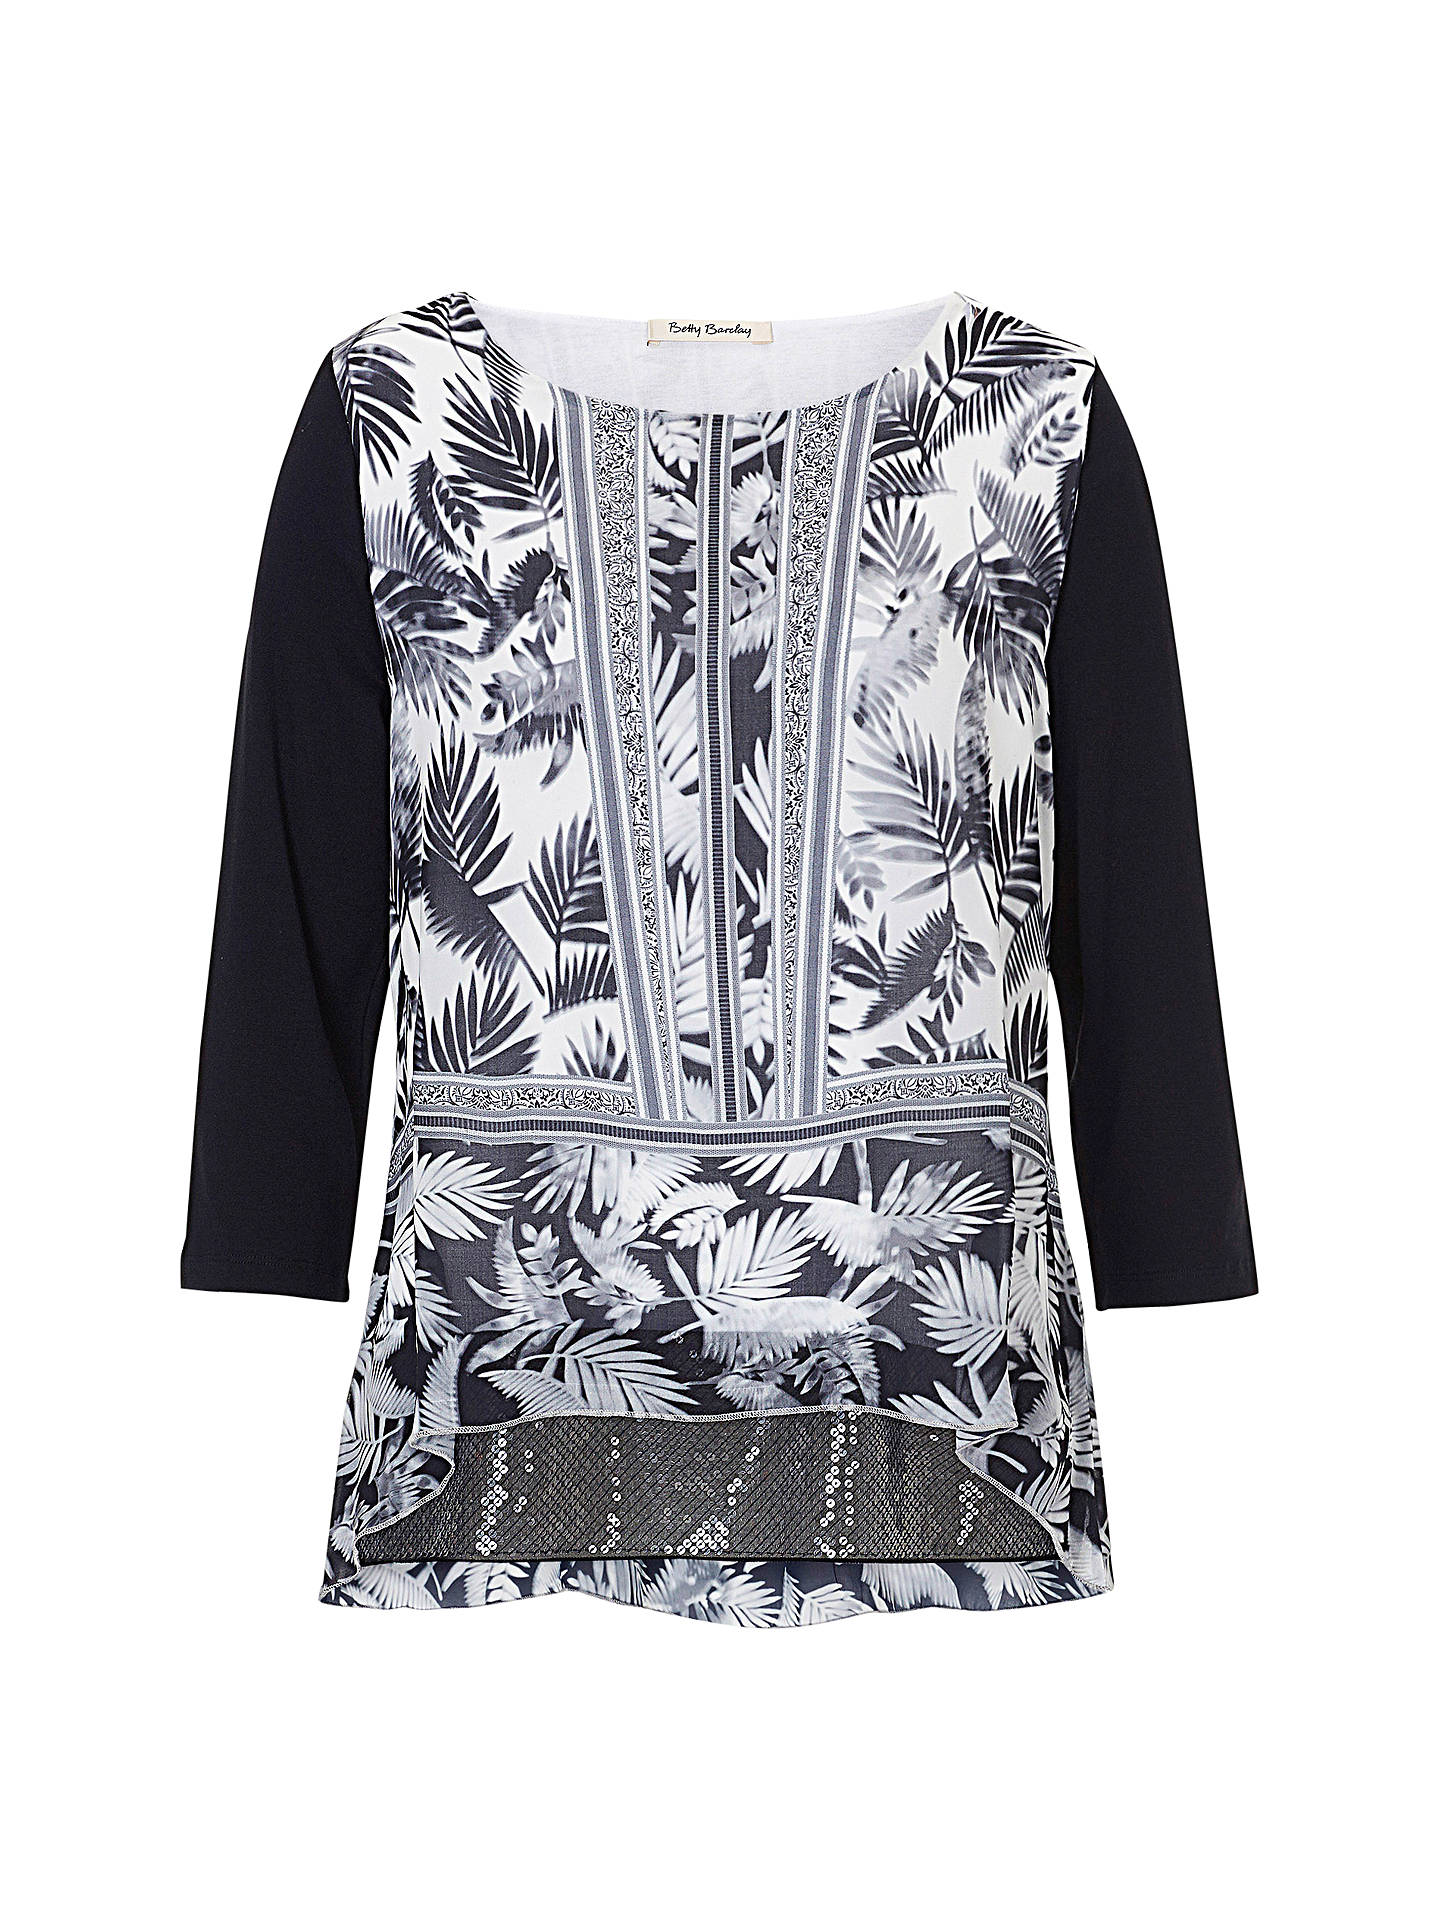 BuyBetty Barclay Print and Sequin Tunic Top, Black/White, 10 Online at johnlewis.com